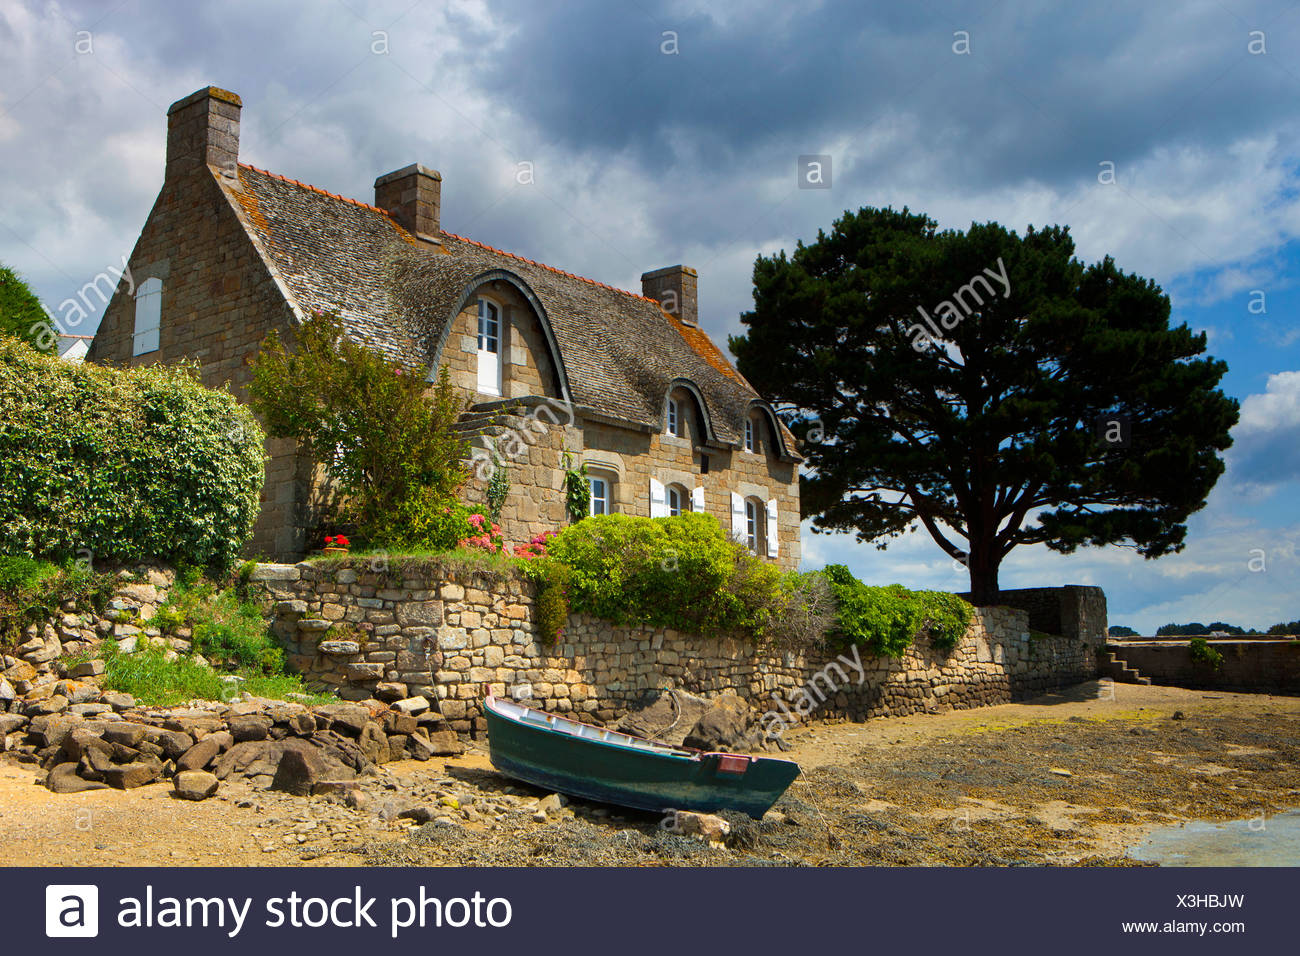 Saint Cado, France, Europe, Brittany, department Morbihan, house, home, boat - Stock Image